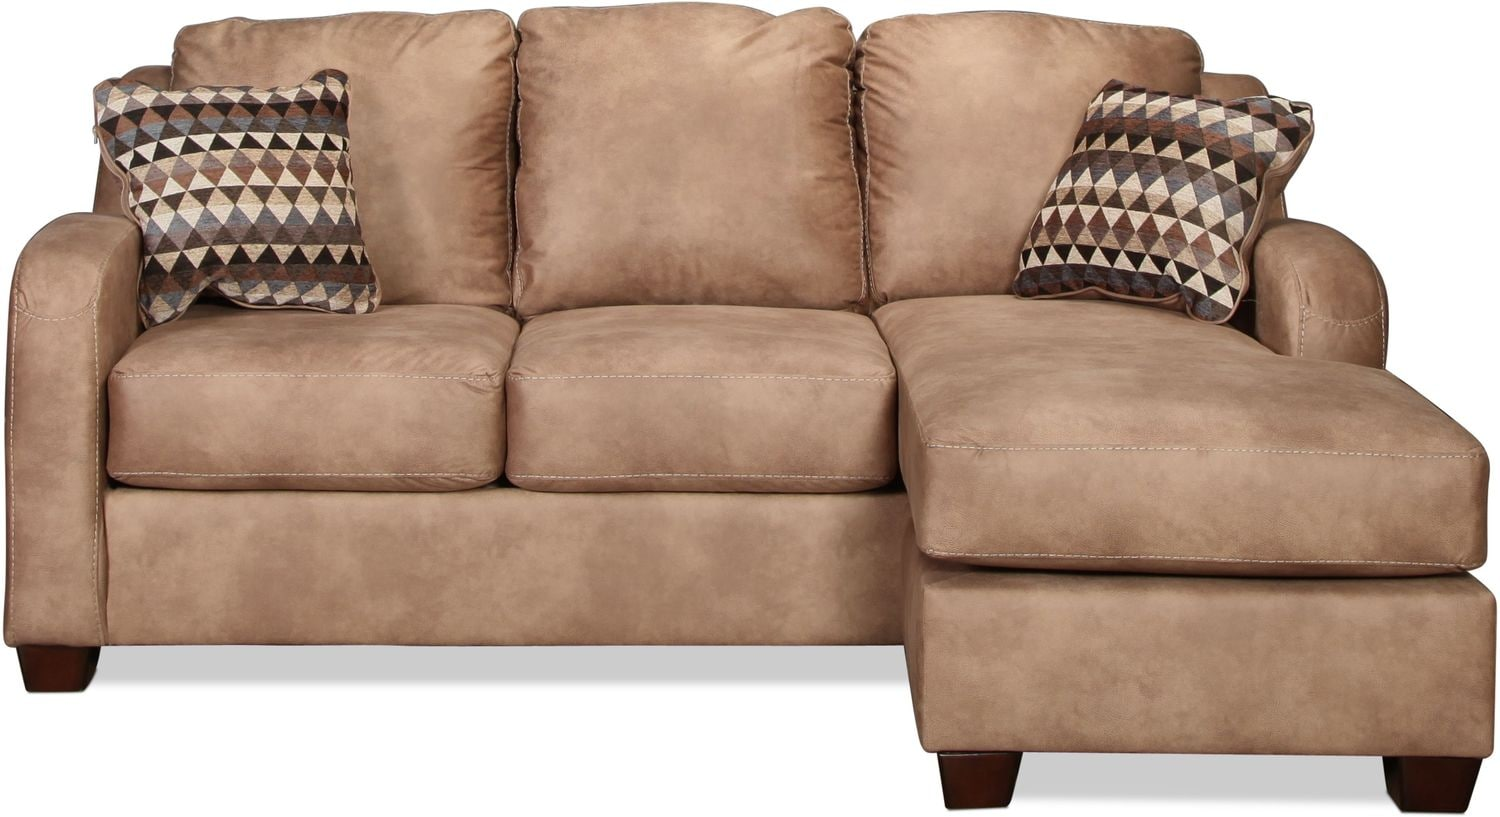 Fresno Queen Sleeper Chaise Sofa - Dune